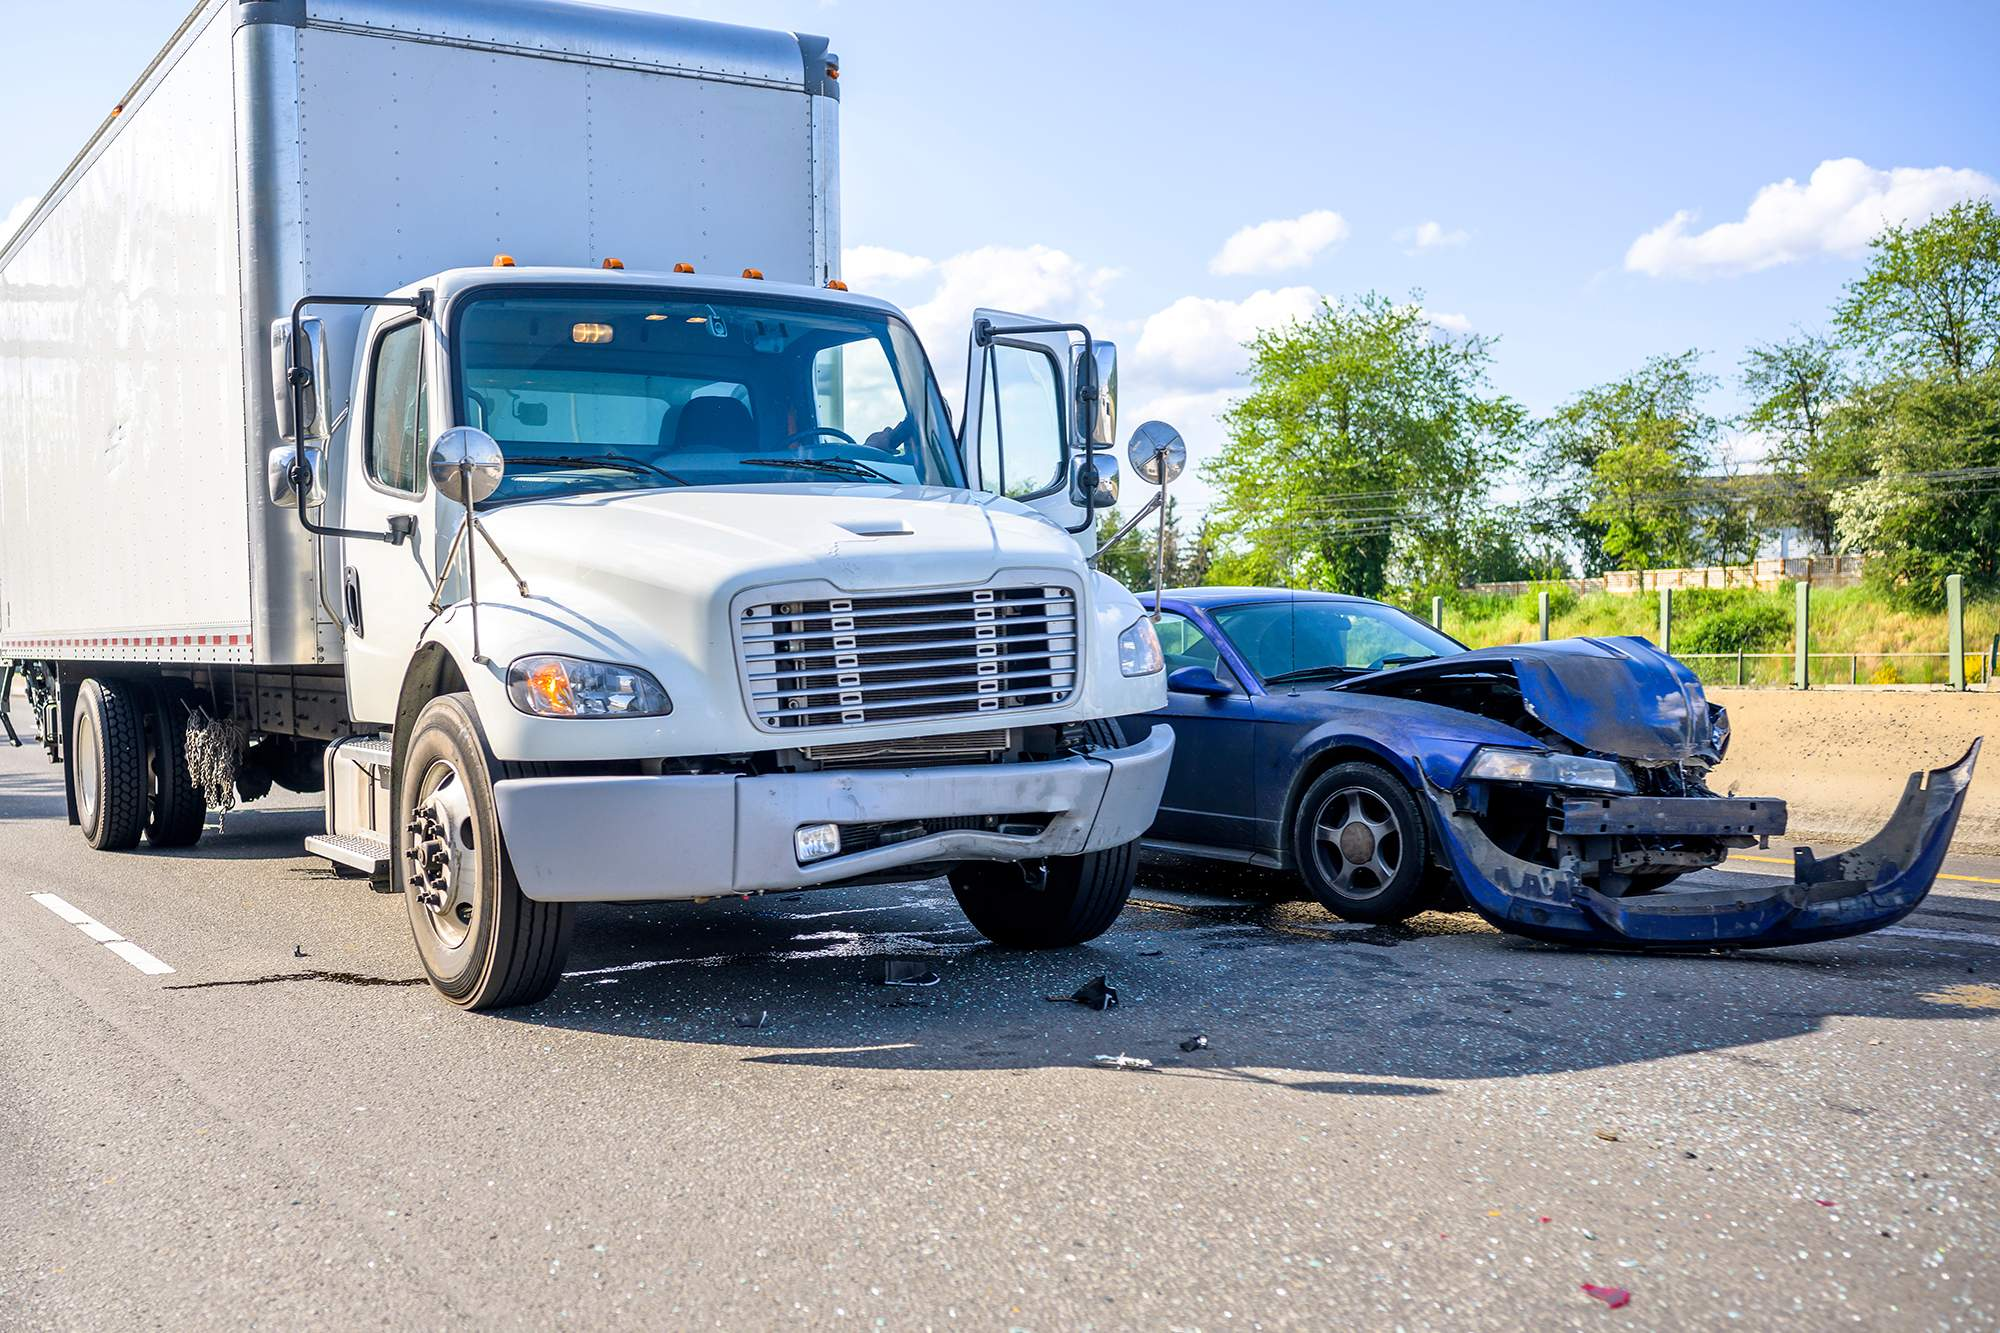 Tractor Trailer/Truck Accidents